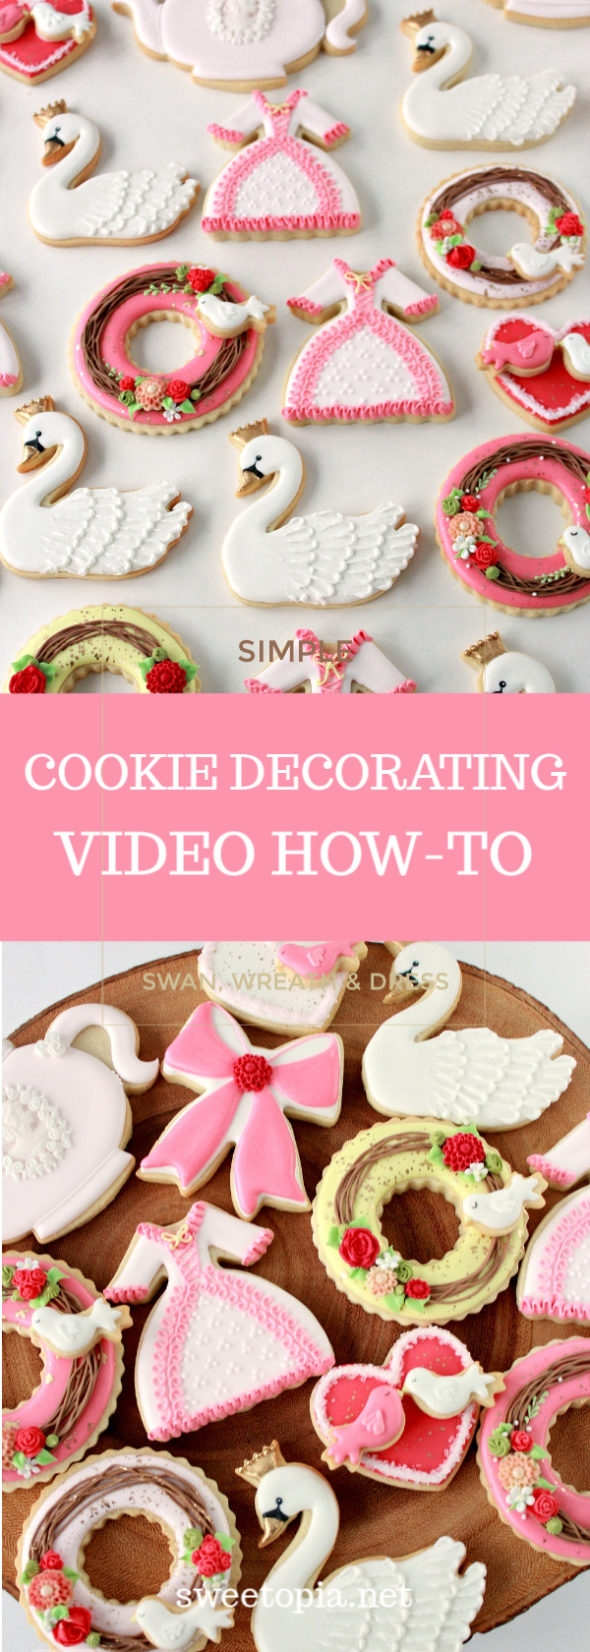 Video tutorial _ How to decorate simple cookies _ swan wreath dress